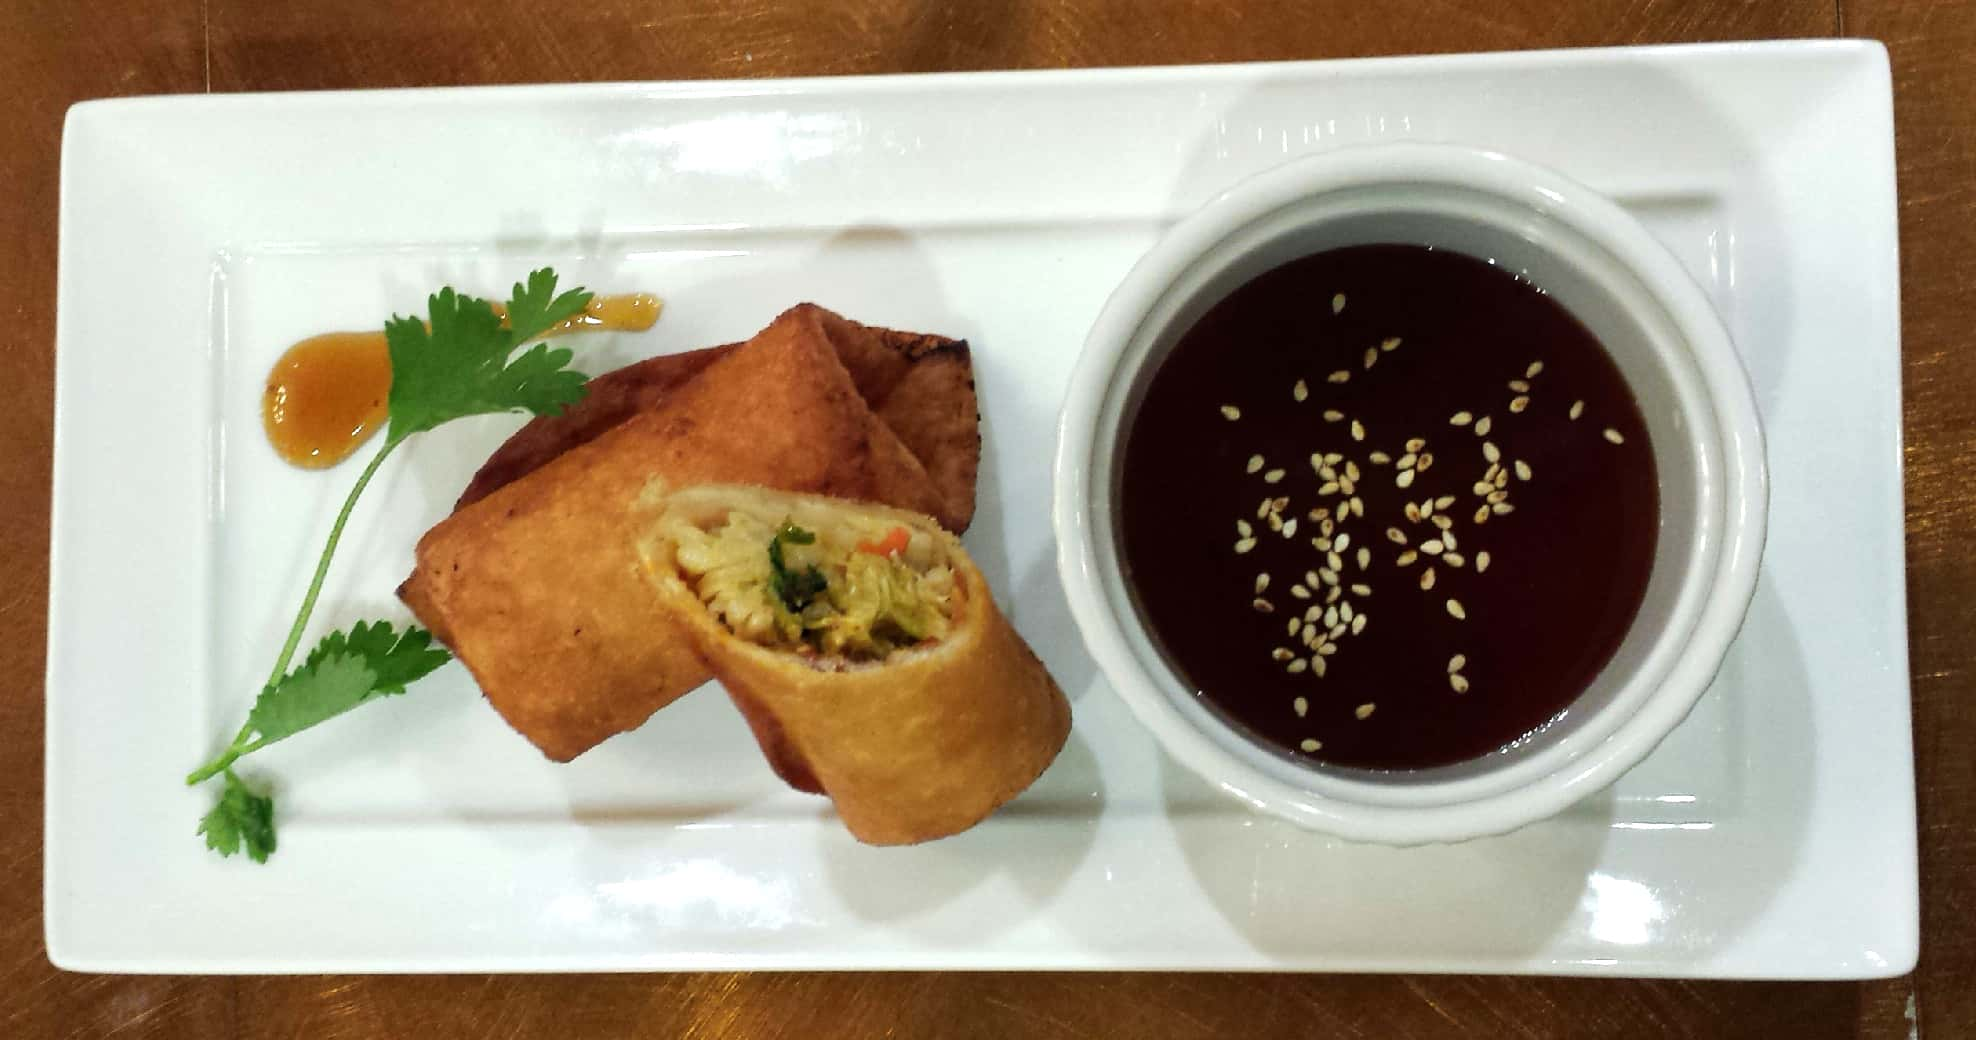 Spicy crab coconut spring rolls with sweet and sour dipping sauce